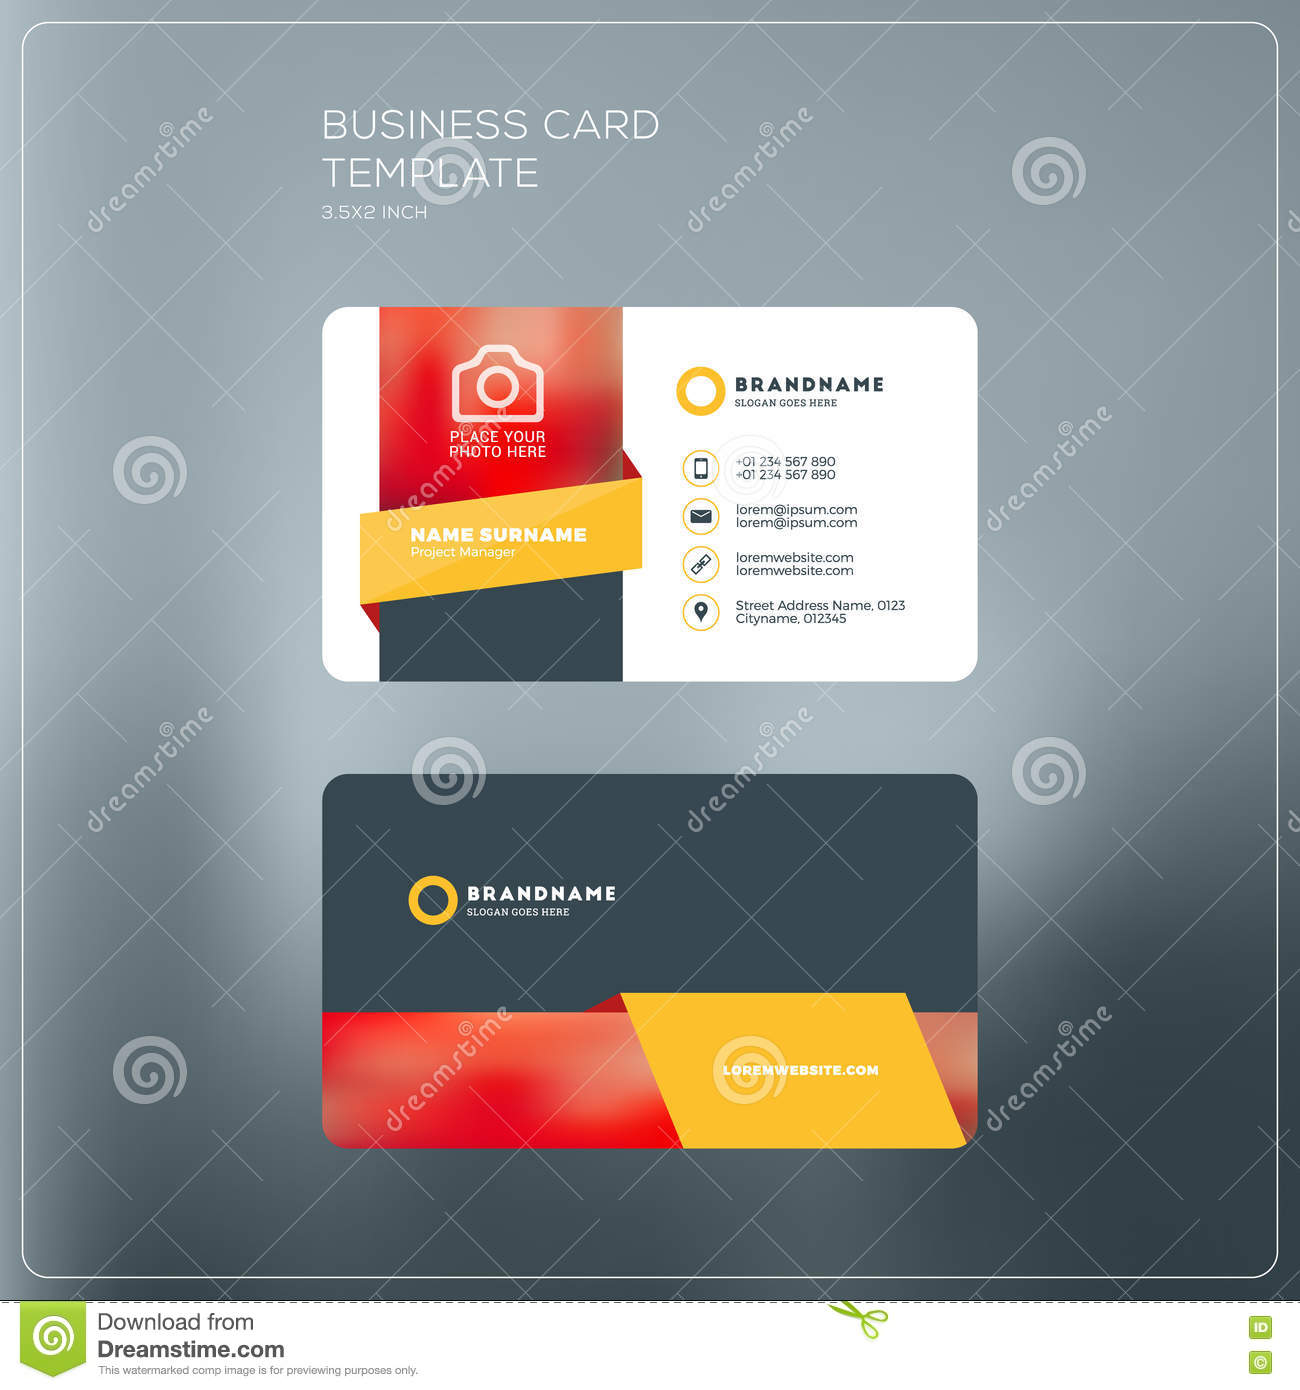 Corporate business card print template personal visiting card w corporate business card print template personal visiting card w friedricerecipe Image collections